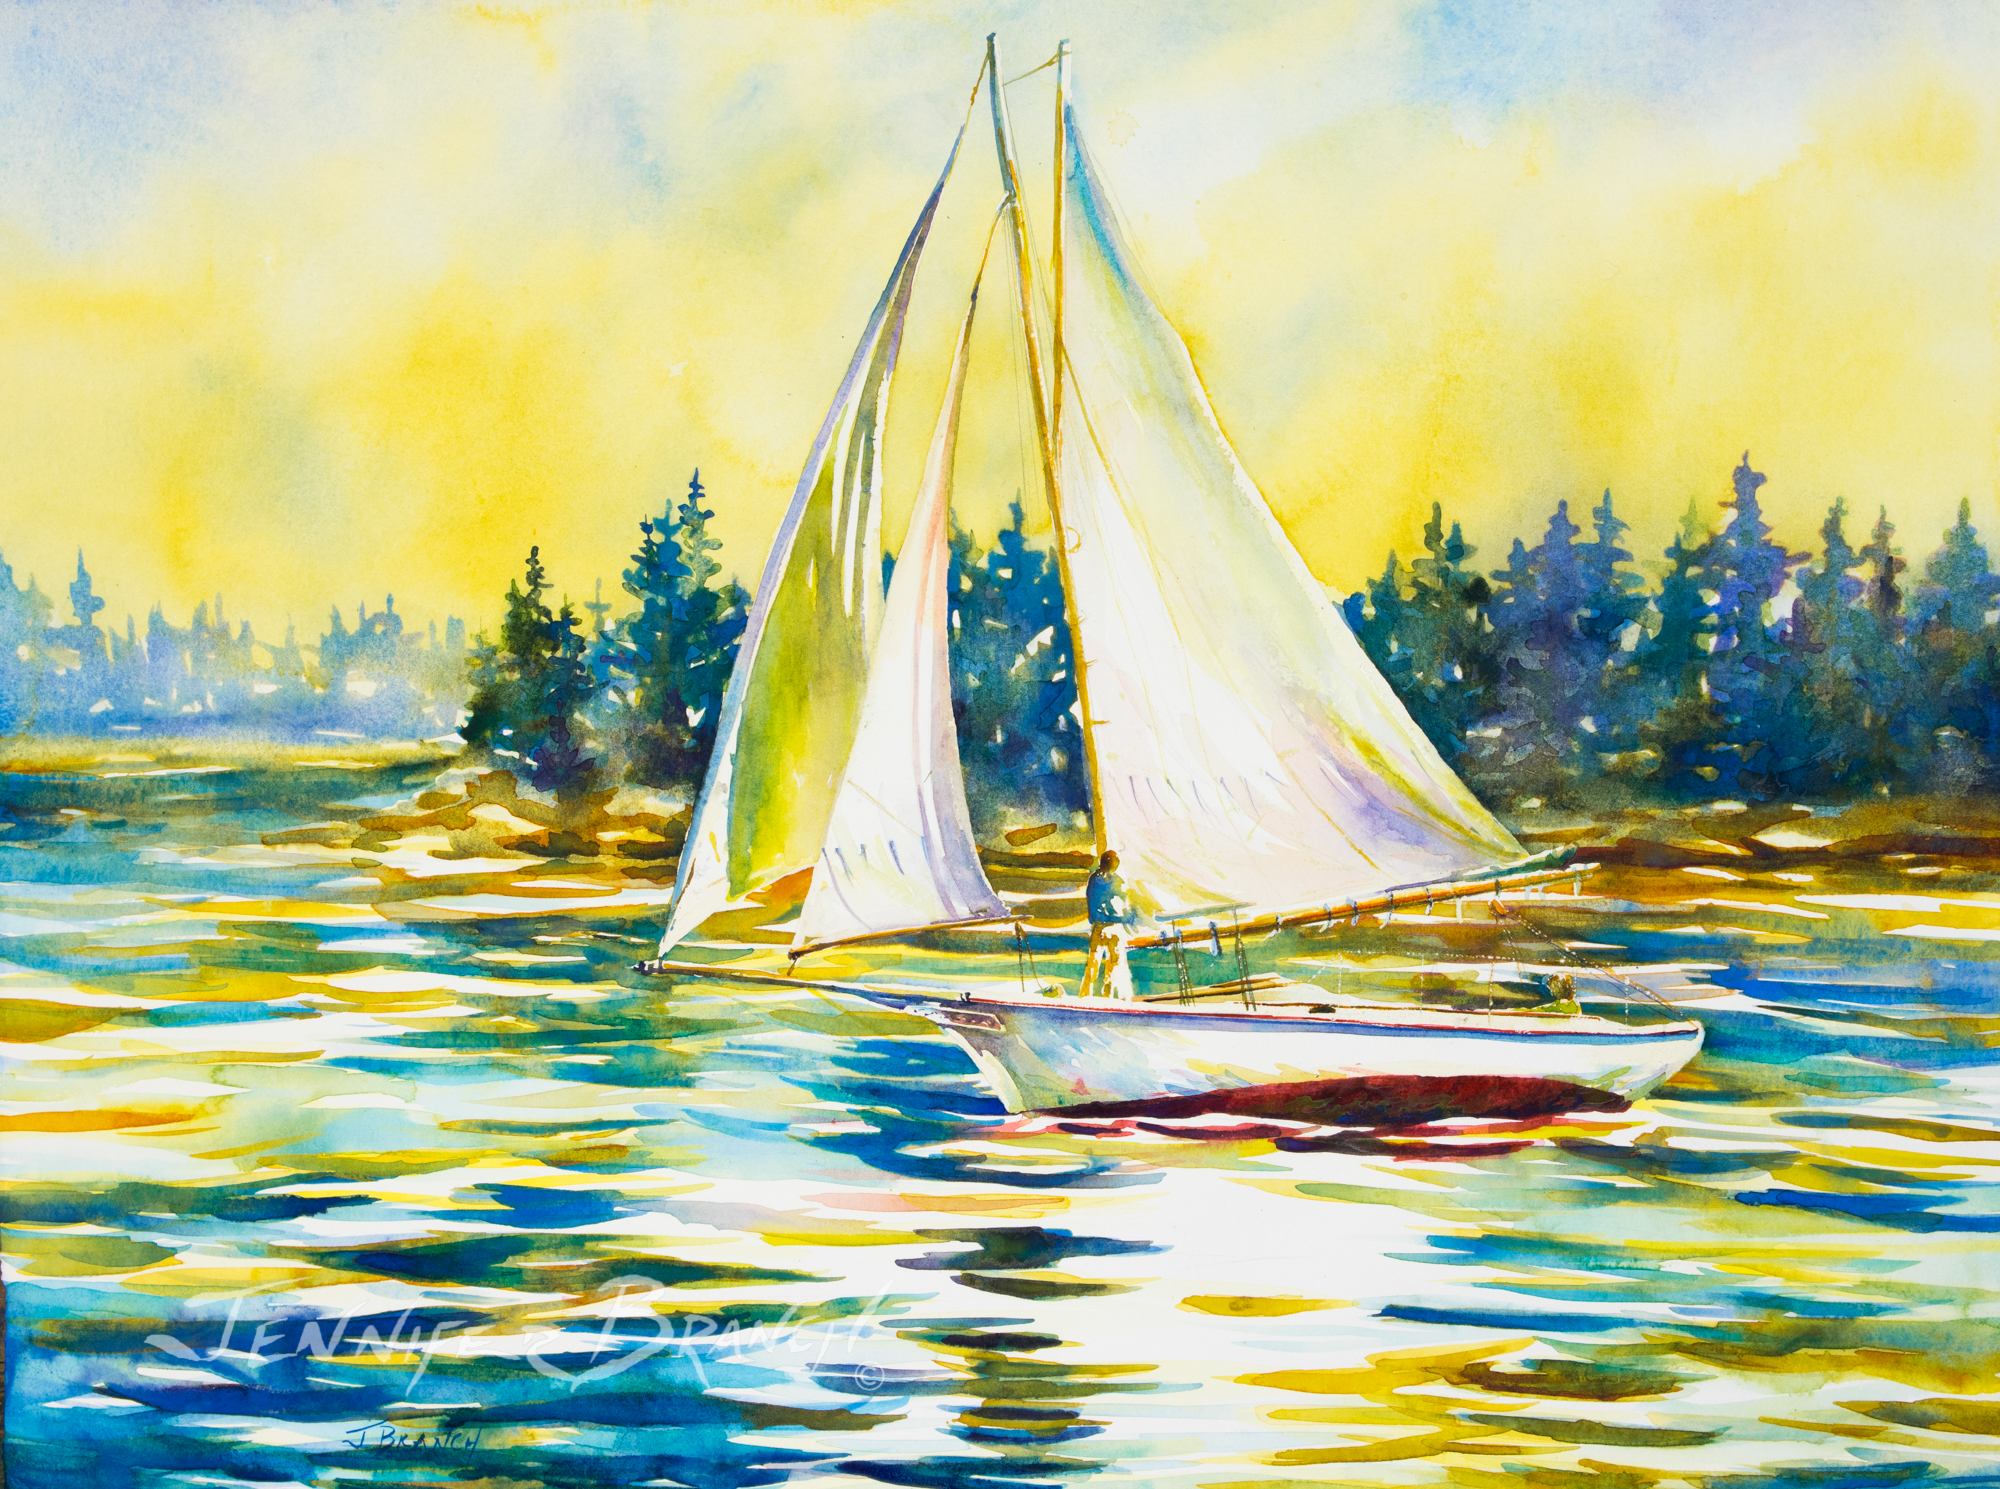 Frienship sloop watercolor painting